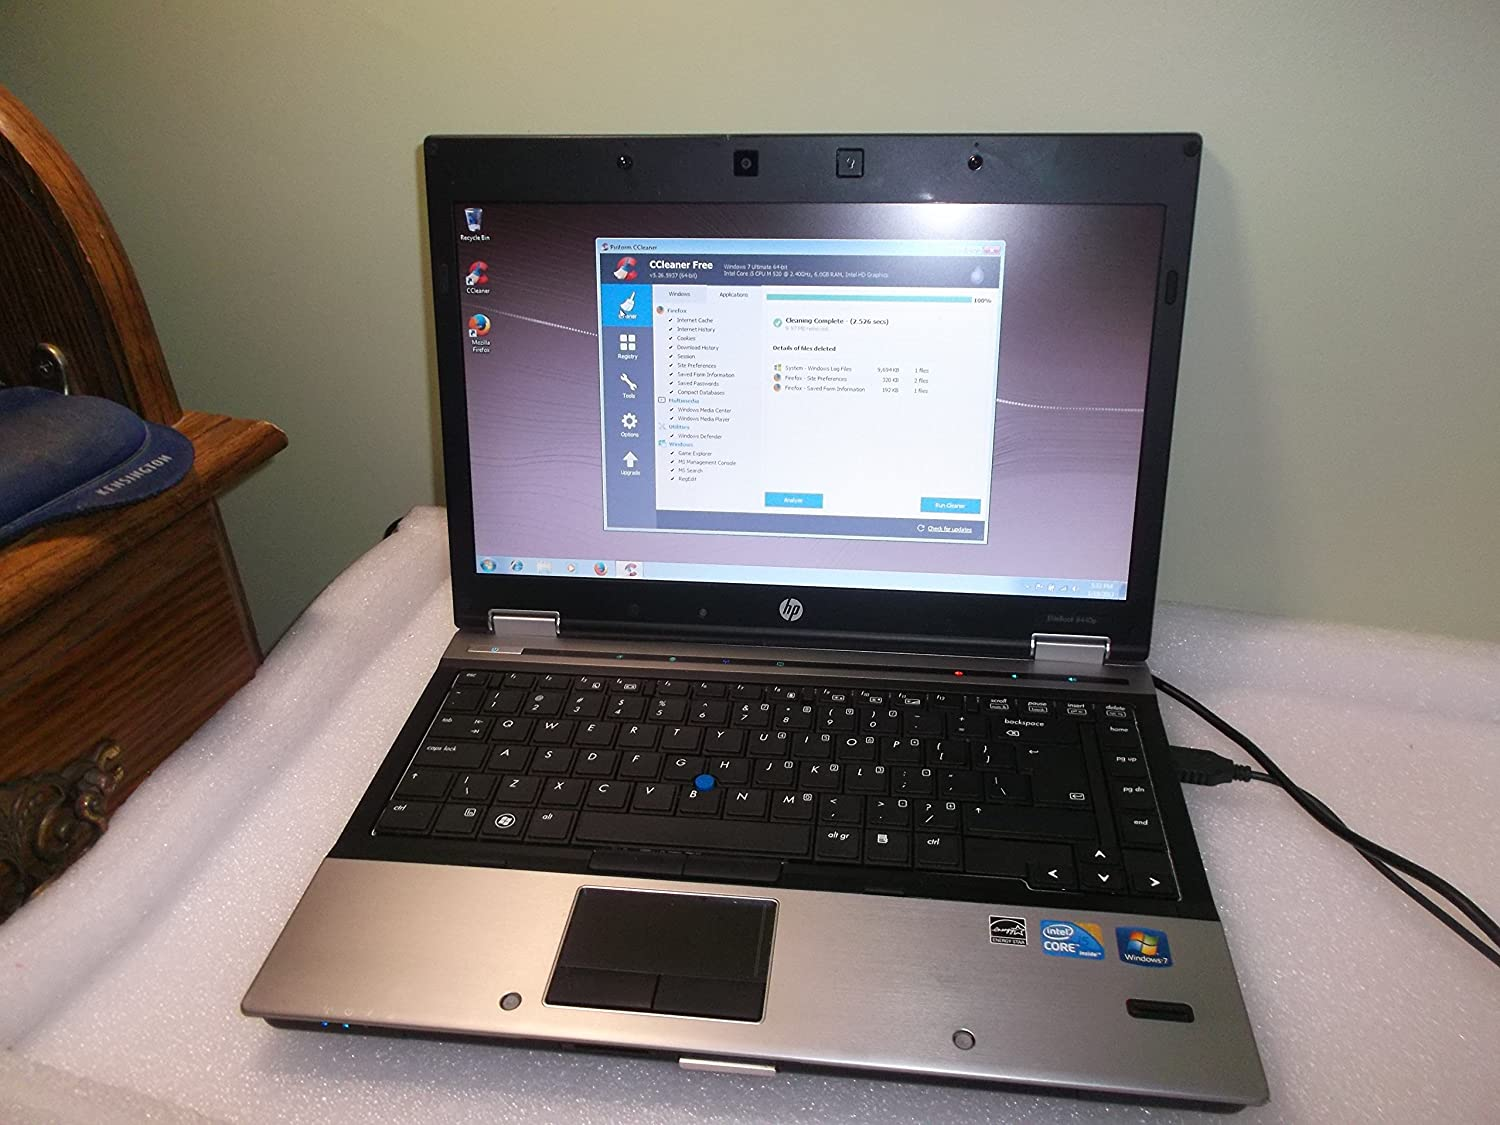 HP Elitebook 8440p Laptop WEBCAM - Core i5 2.4ghz - 4GB DDR3 - 320GB HDD - DVDRW - Windows 7 Pro